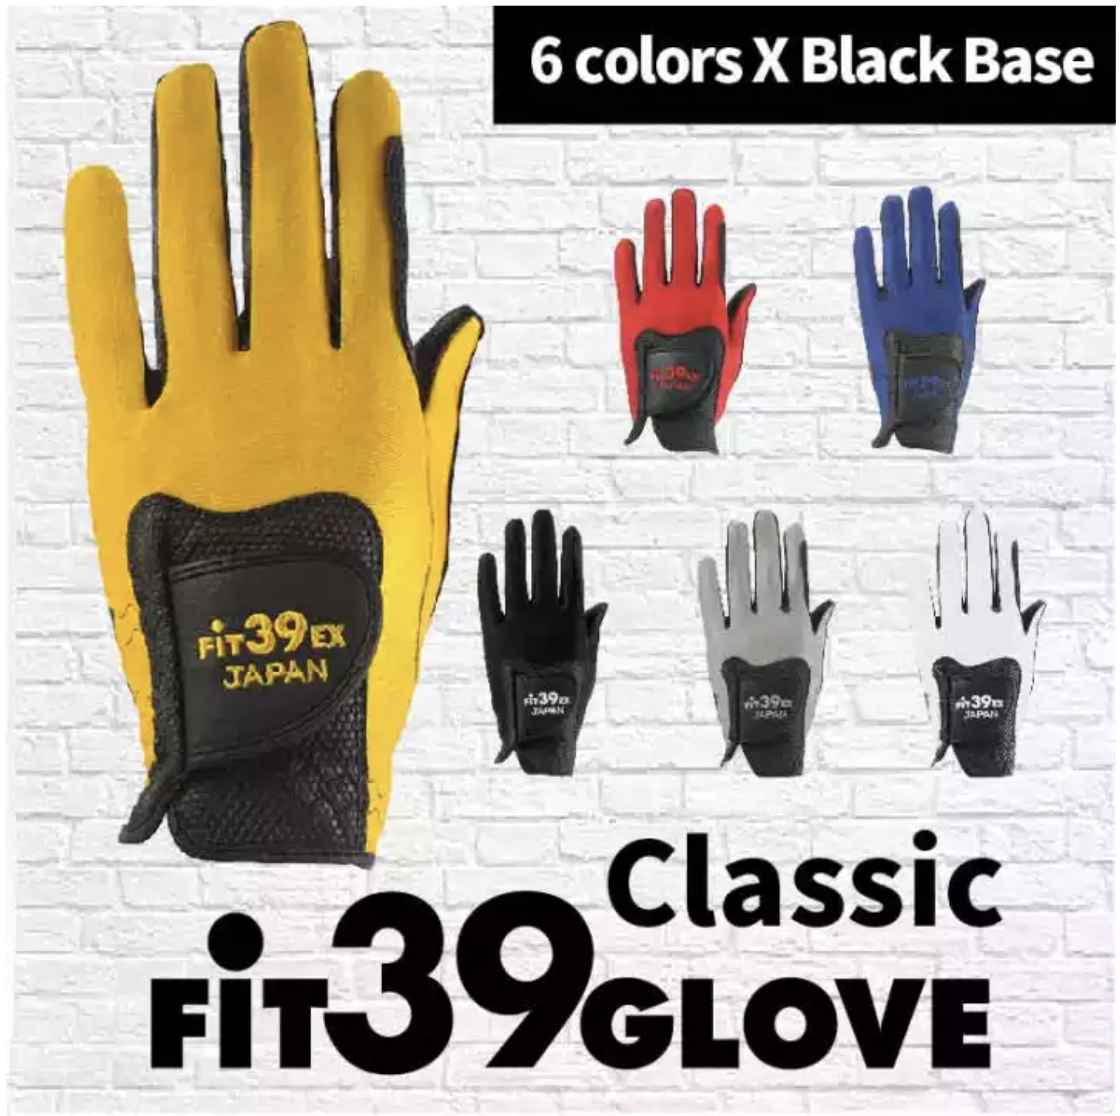 [fit39] Classic Golf Glove Left Hand 6 Colors X Black Base, Non Slip, Stretchable, Durable, Washable, Antimicrobial, Speedy Dry,japans Top Seller.